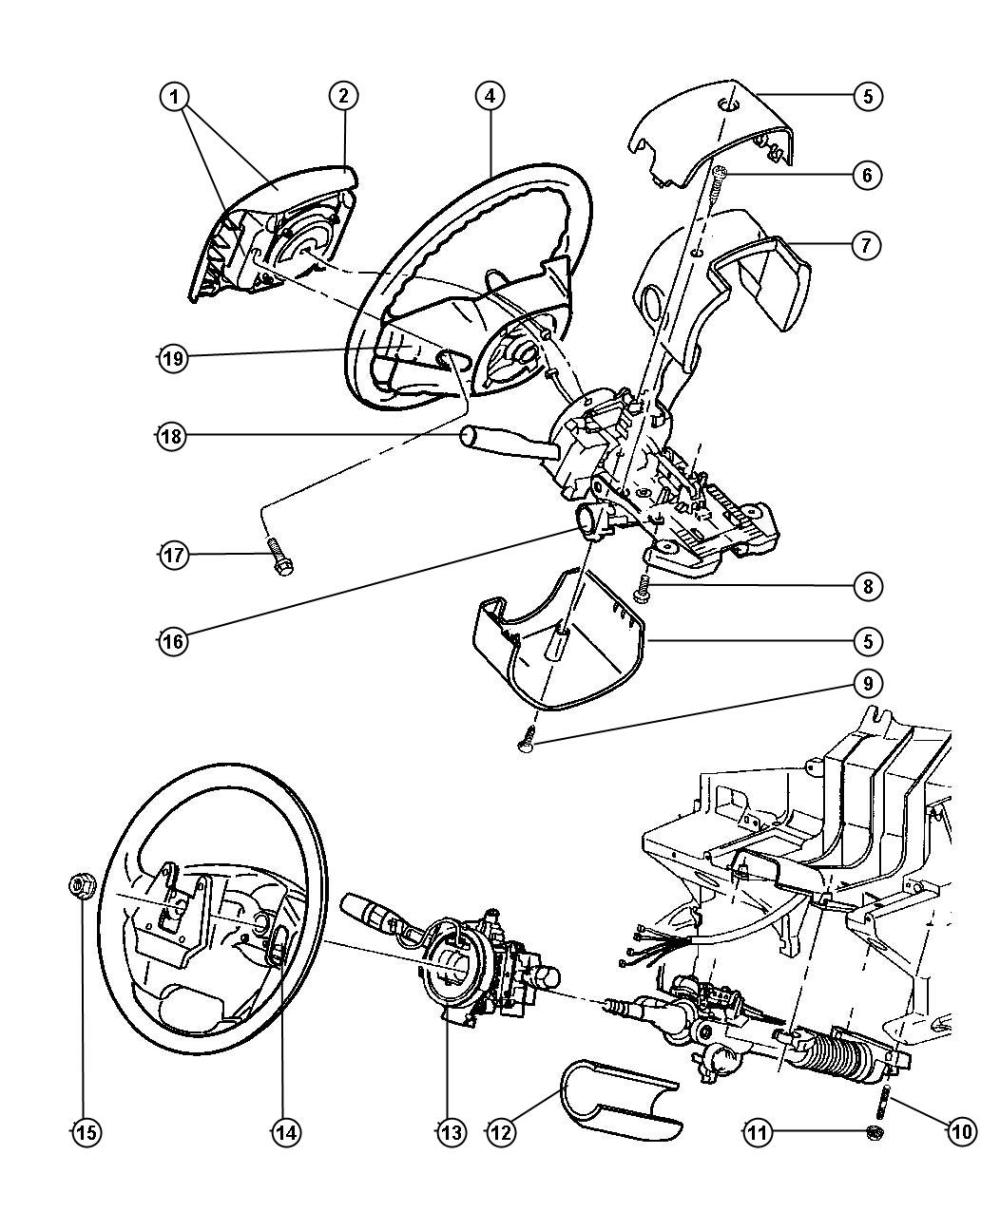 medium resolution of engine wiring diagram for 1999 jeep grand cherokee engine 01 jeep grand cherokee wiring diagram 2007 jeep grand cherokee wiring diagram